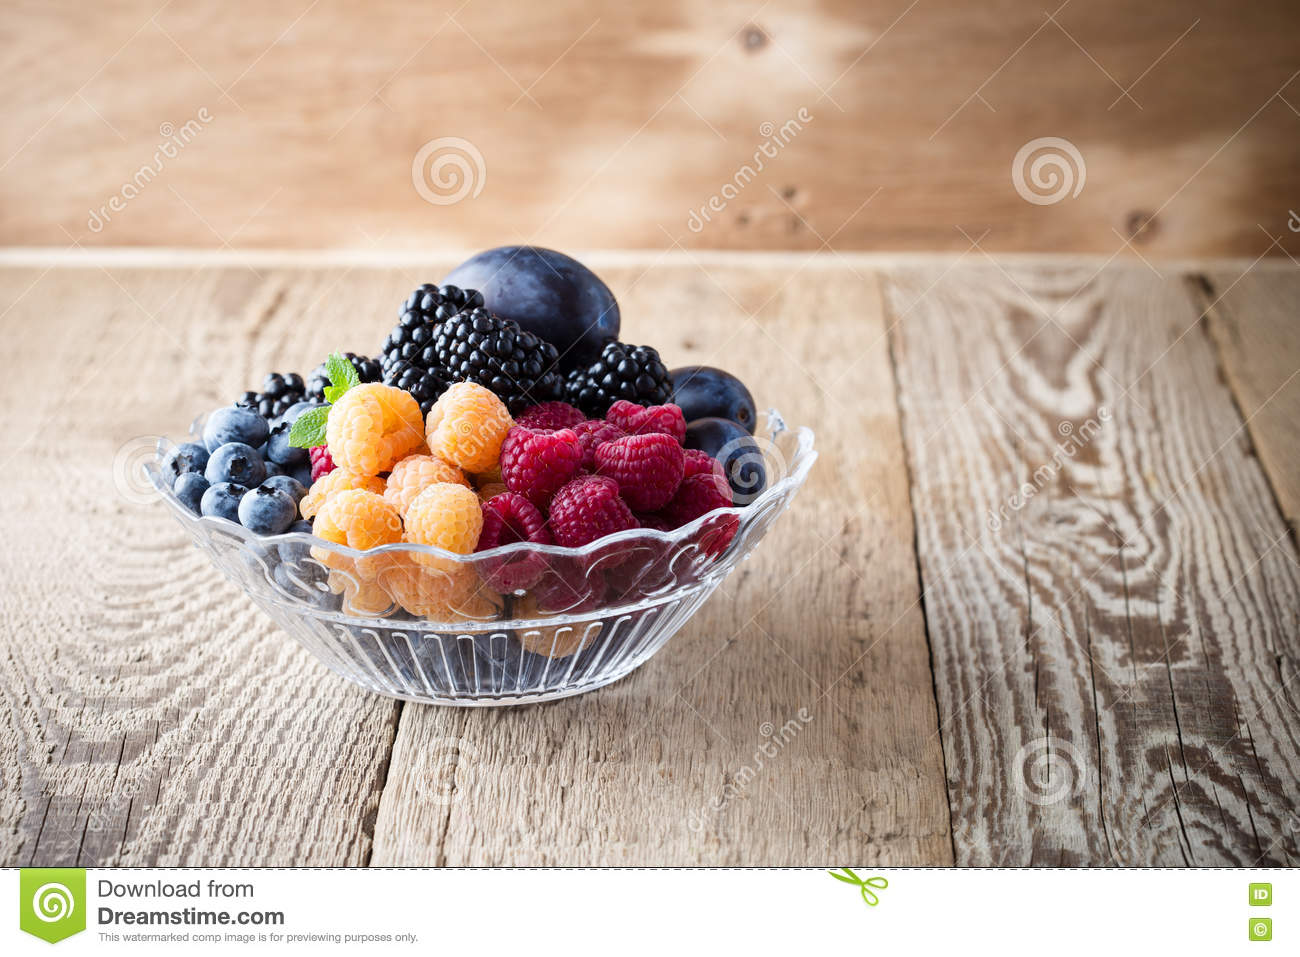 Download Fresh Summer Berries And Fruits In Glass Bowl On Wooden Rustic Stock Photo - Image of background, harvested: 76595548